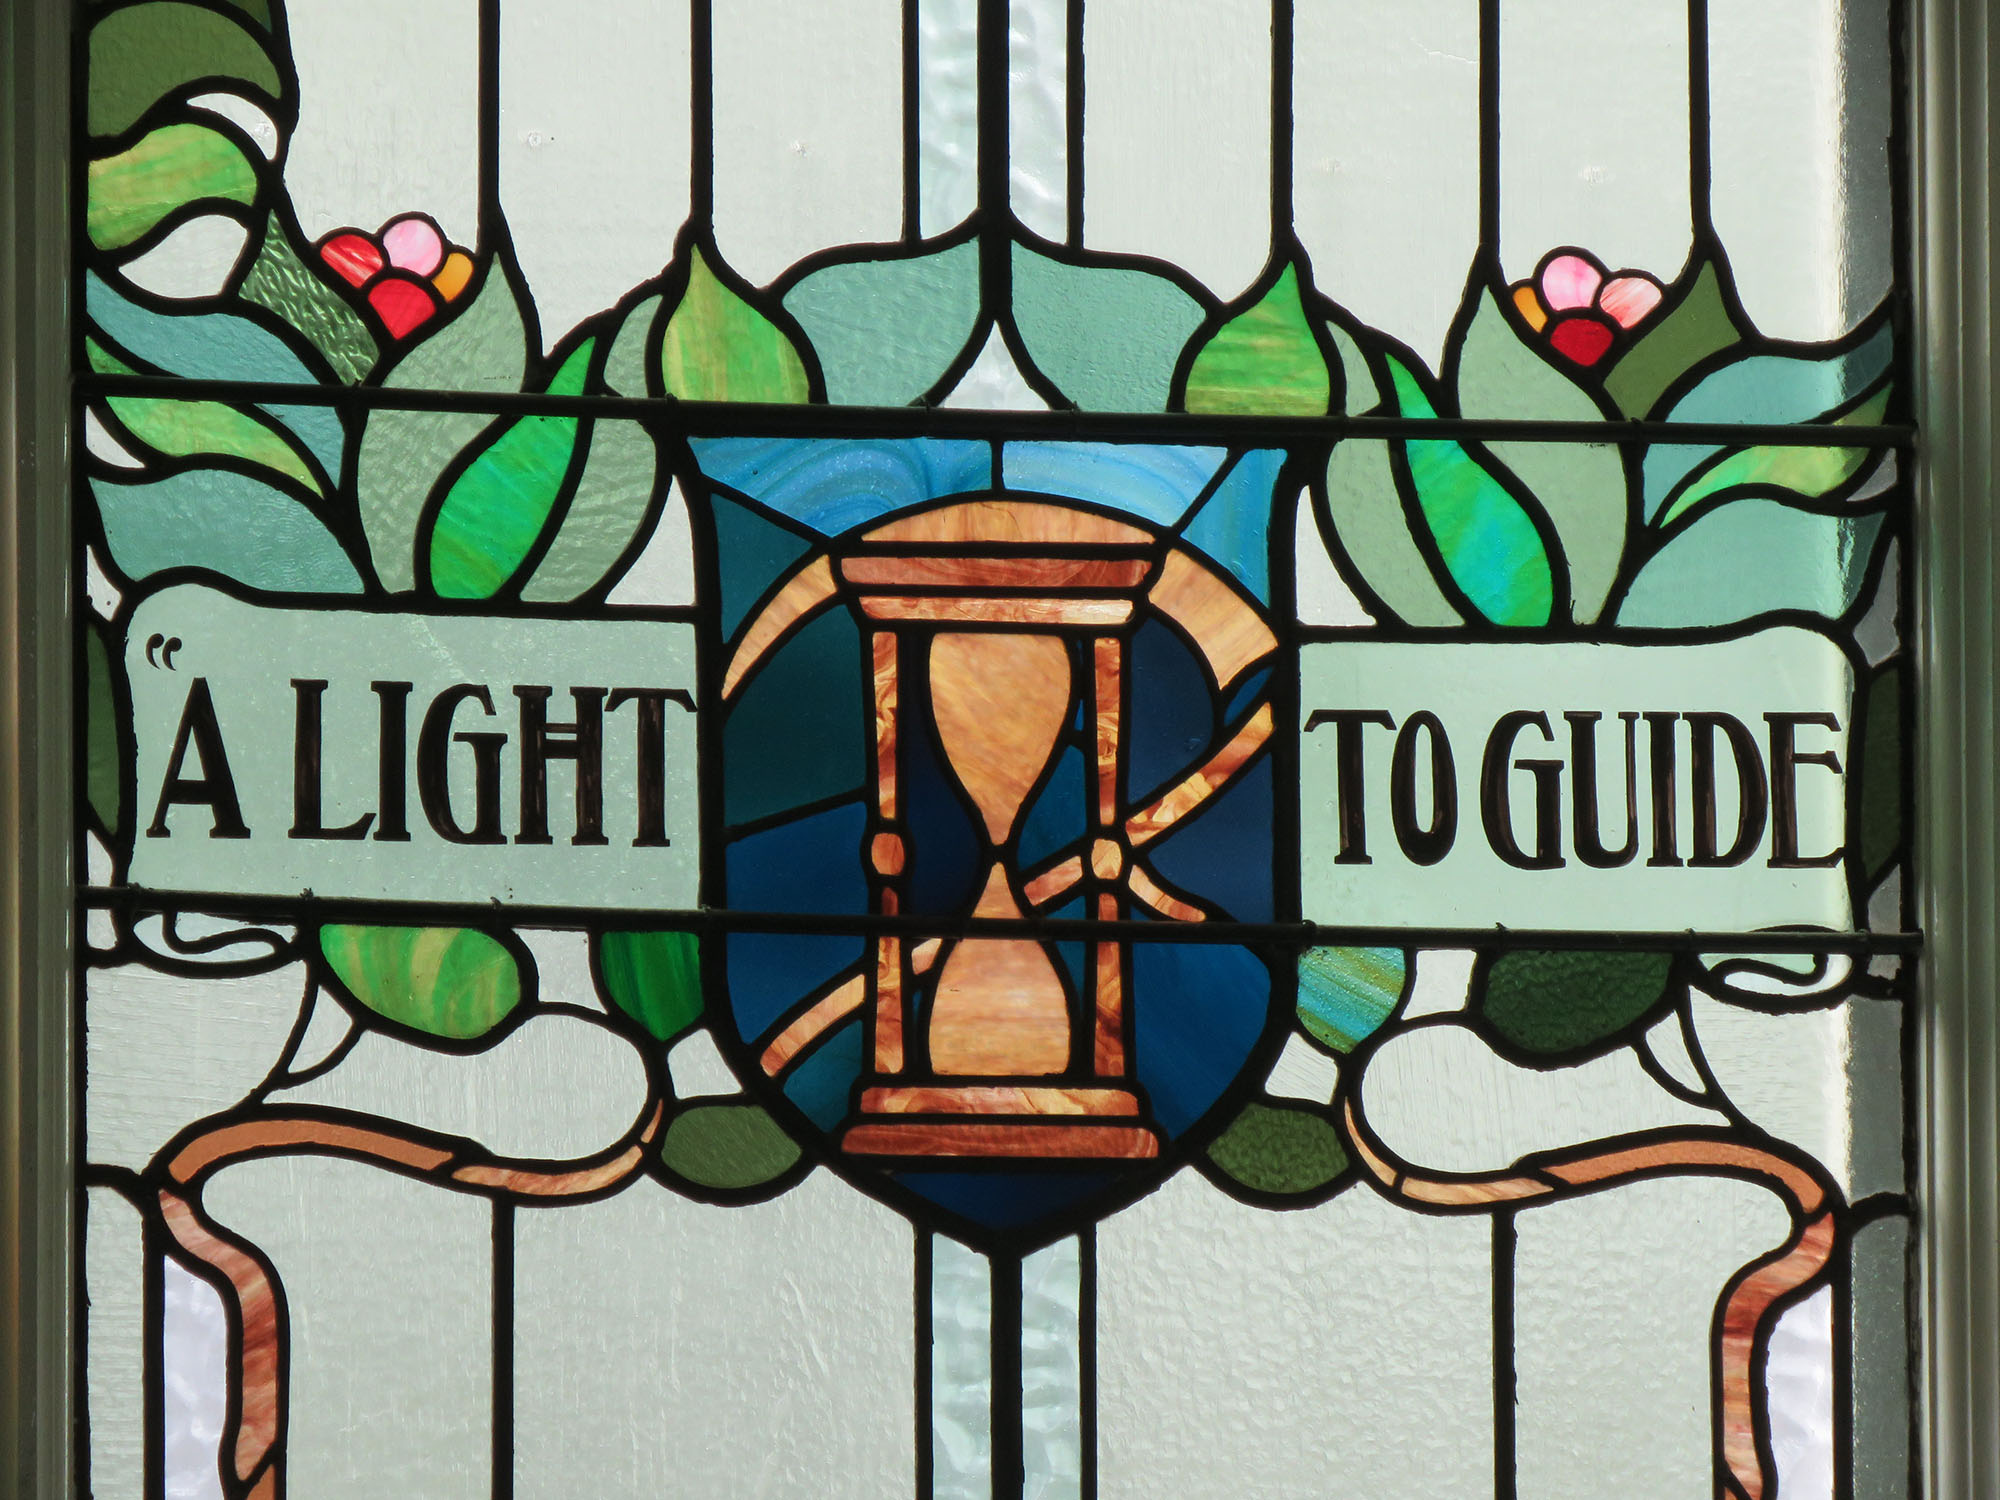 4.-DETAIL-FROM-ACCRINGTON-LIBRARY-WINDOW-DESIGNED-BY-HENRY-GUSTAVE-HILLER.-PHOTO-CREDIT-LANCASHIRE-COUNTY-LIBRARIES